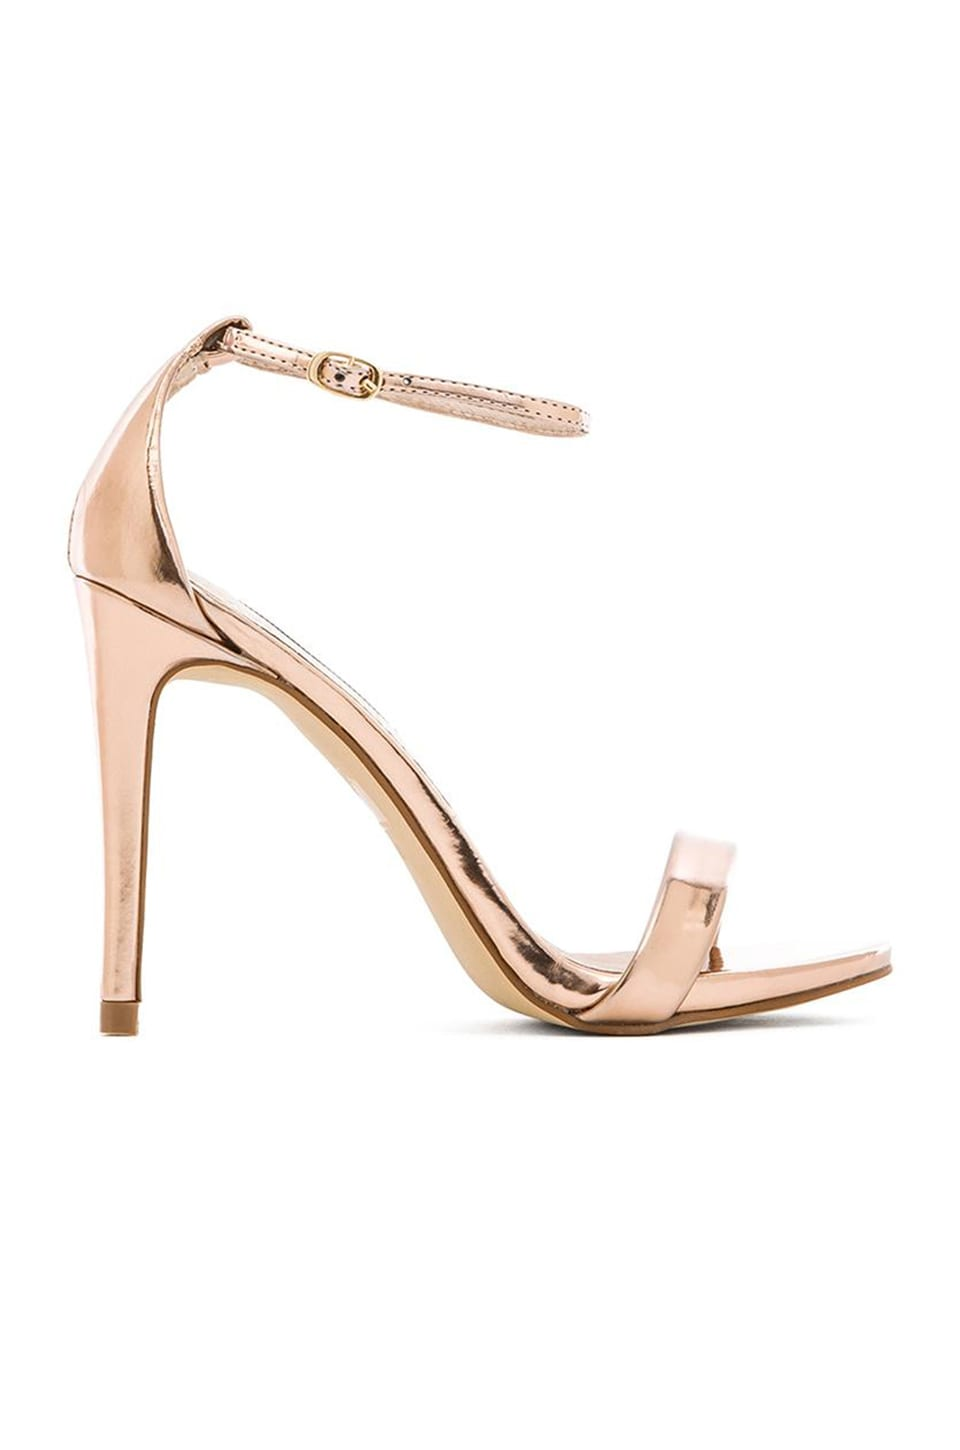 c0d9711b1ae6 Steve Madden Stecy Heel in Rose Gold